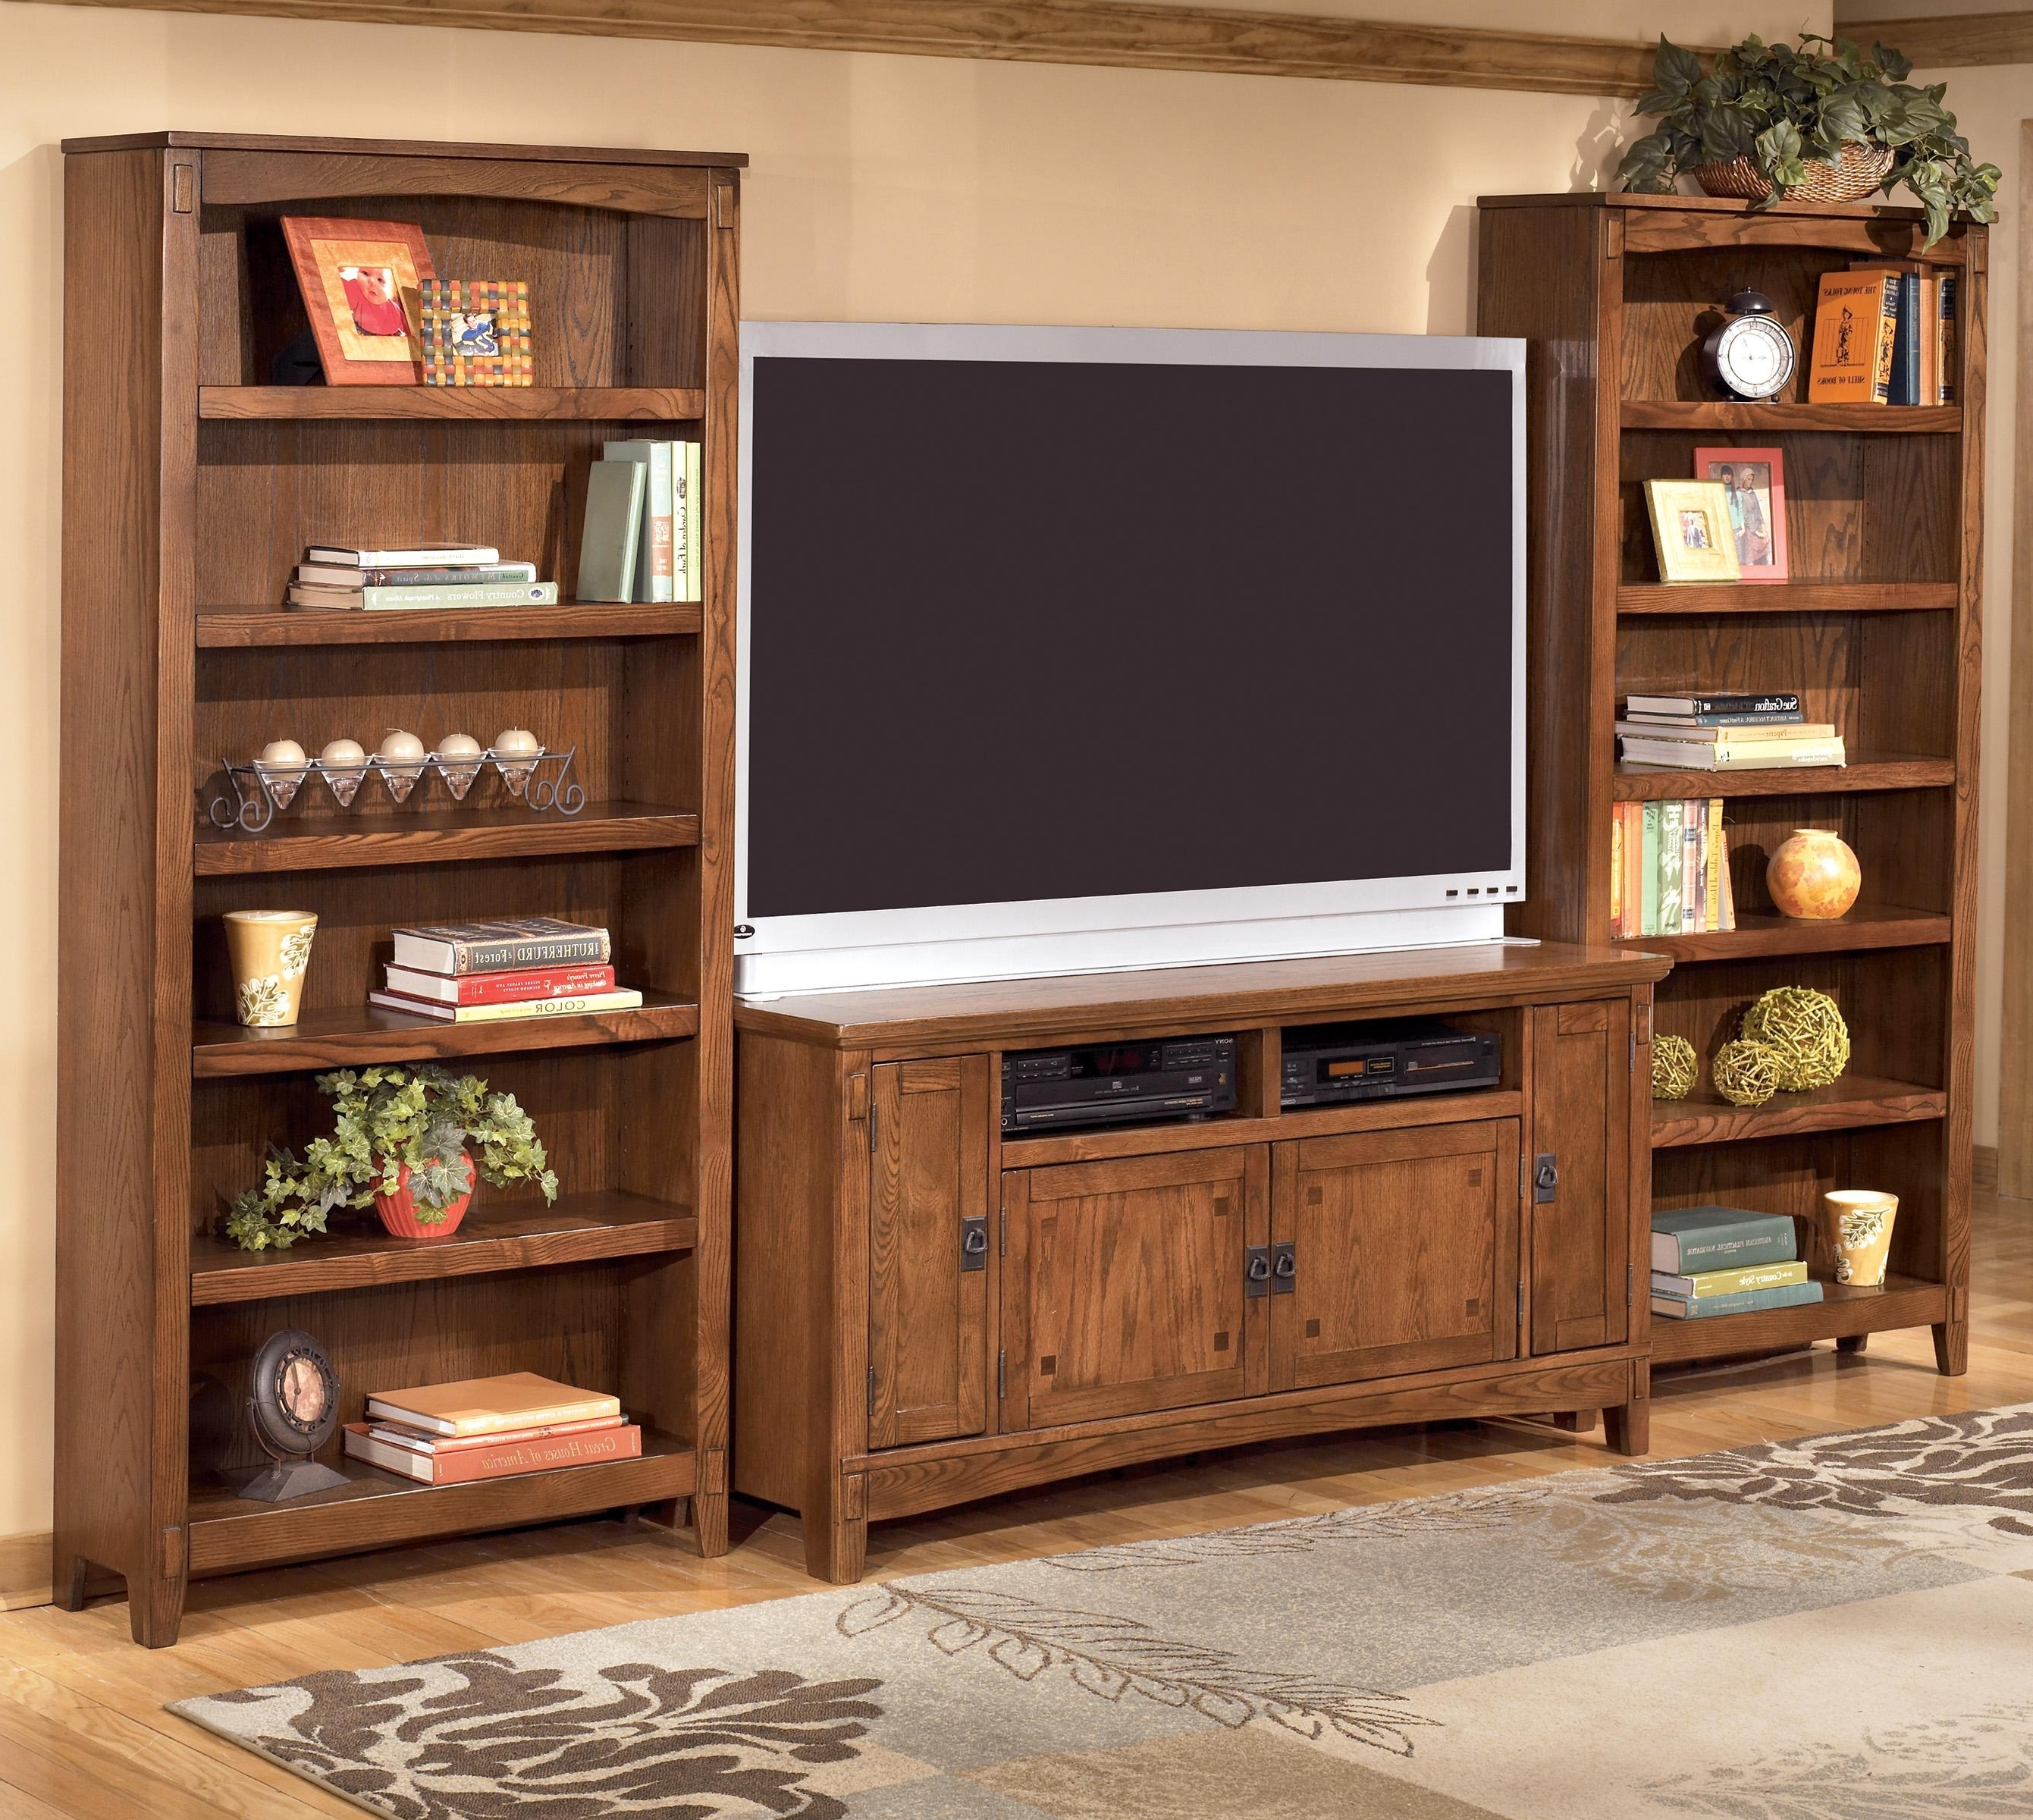 60 Inch Tv Stand & 2 Large Bookcasesashley Furniture (Gallery 9 of 15)